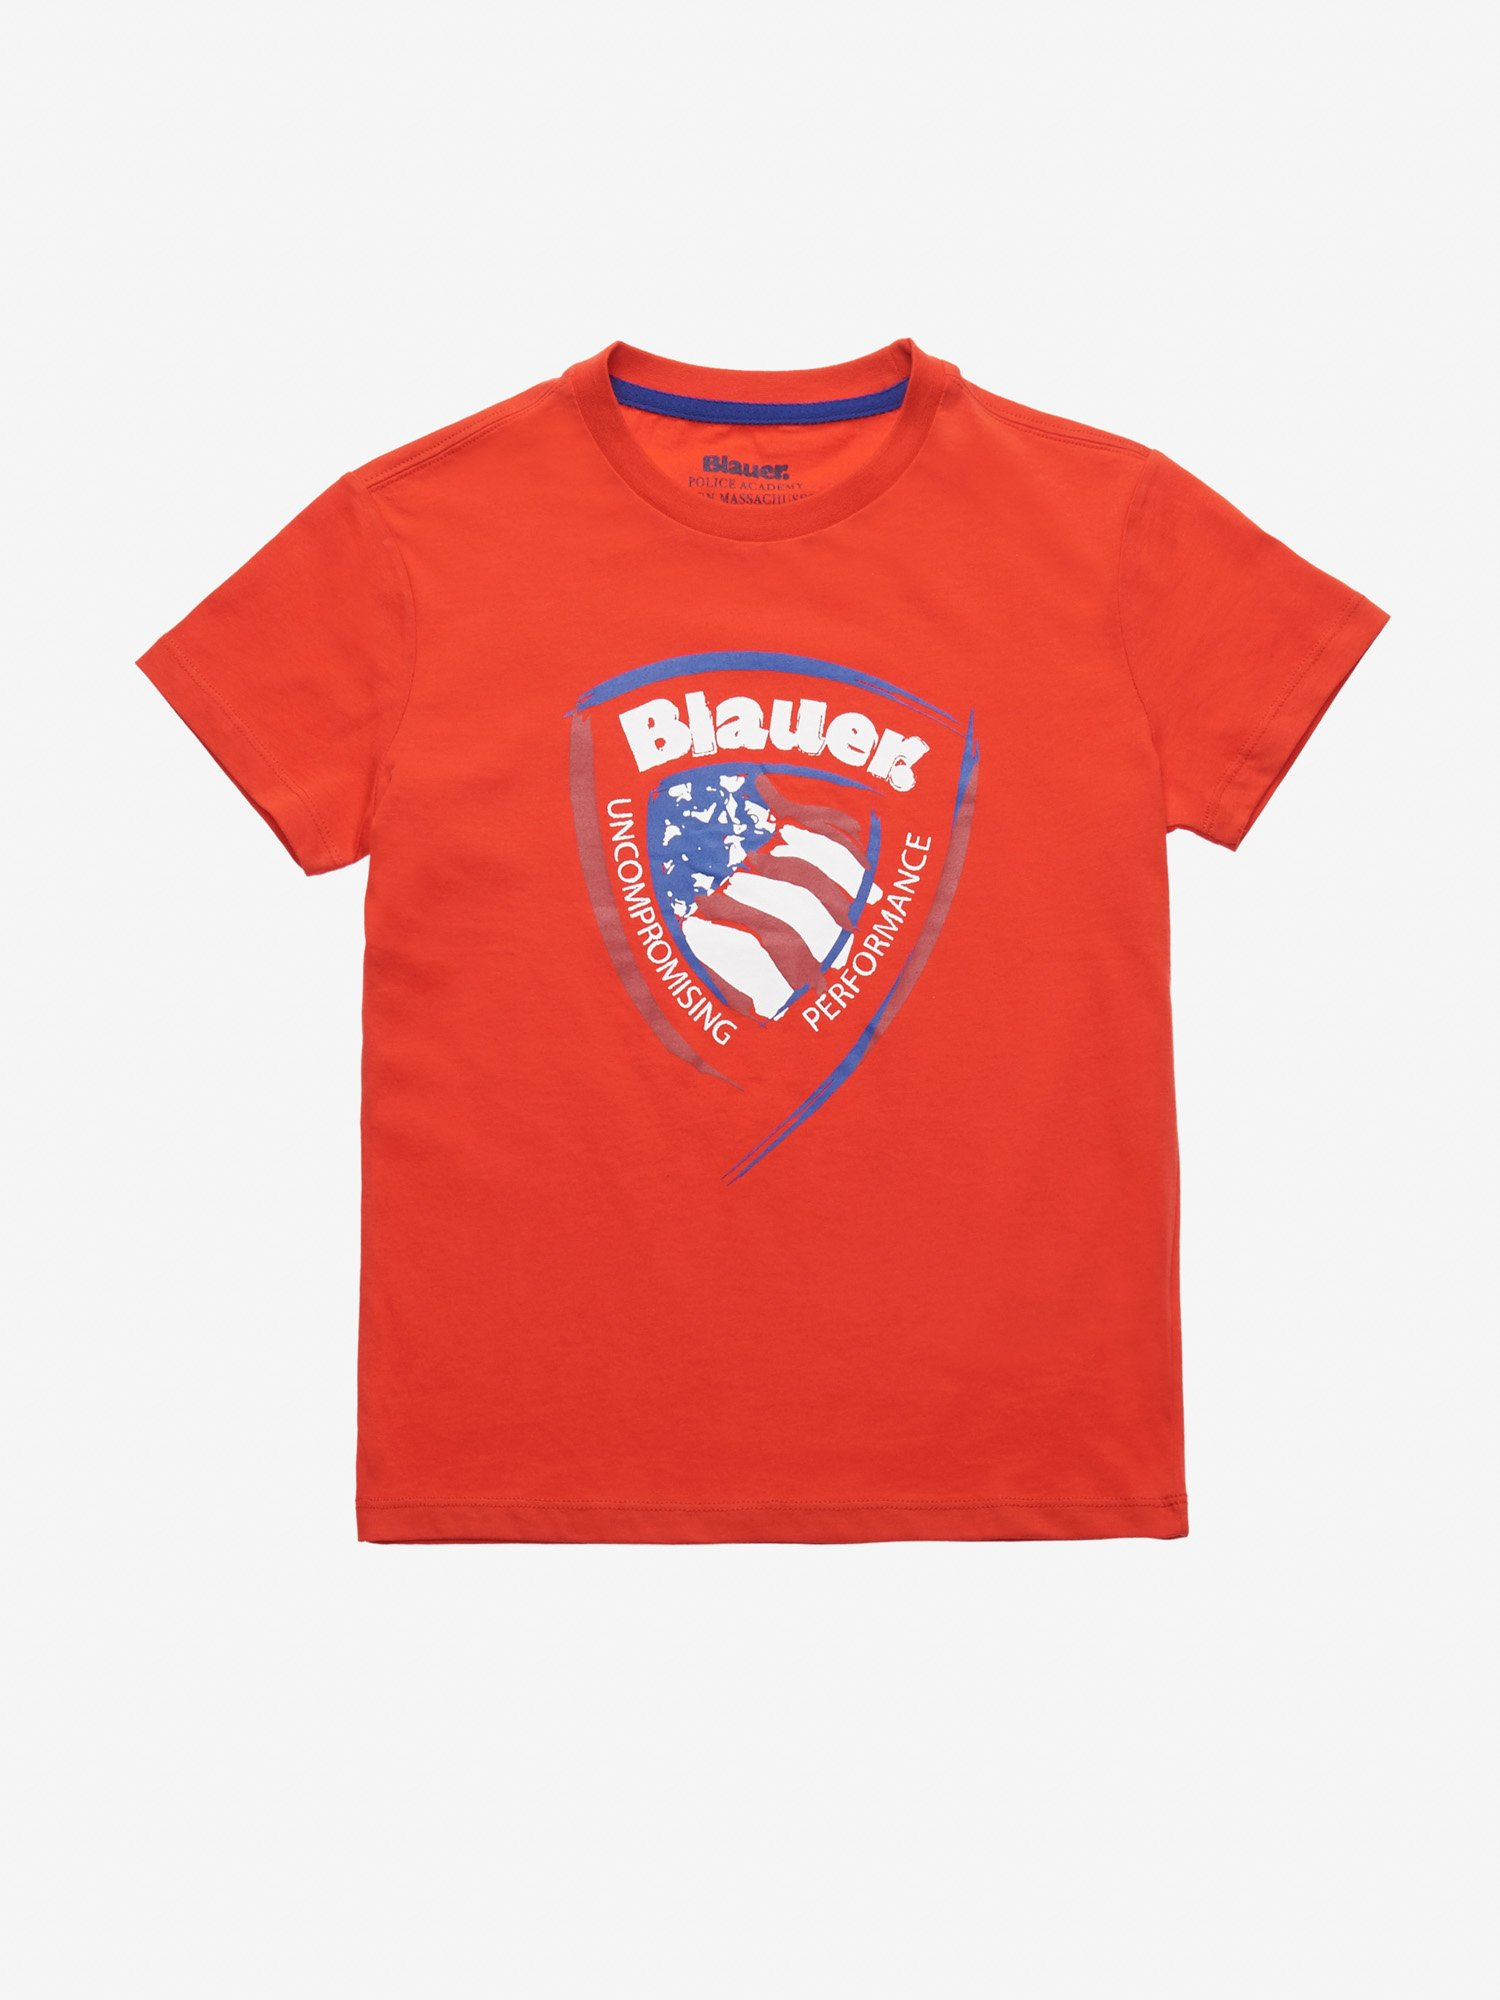 T-SHIRT JUNIOR BLAUER-SCHILD - Blauer